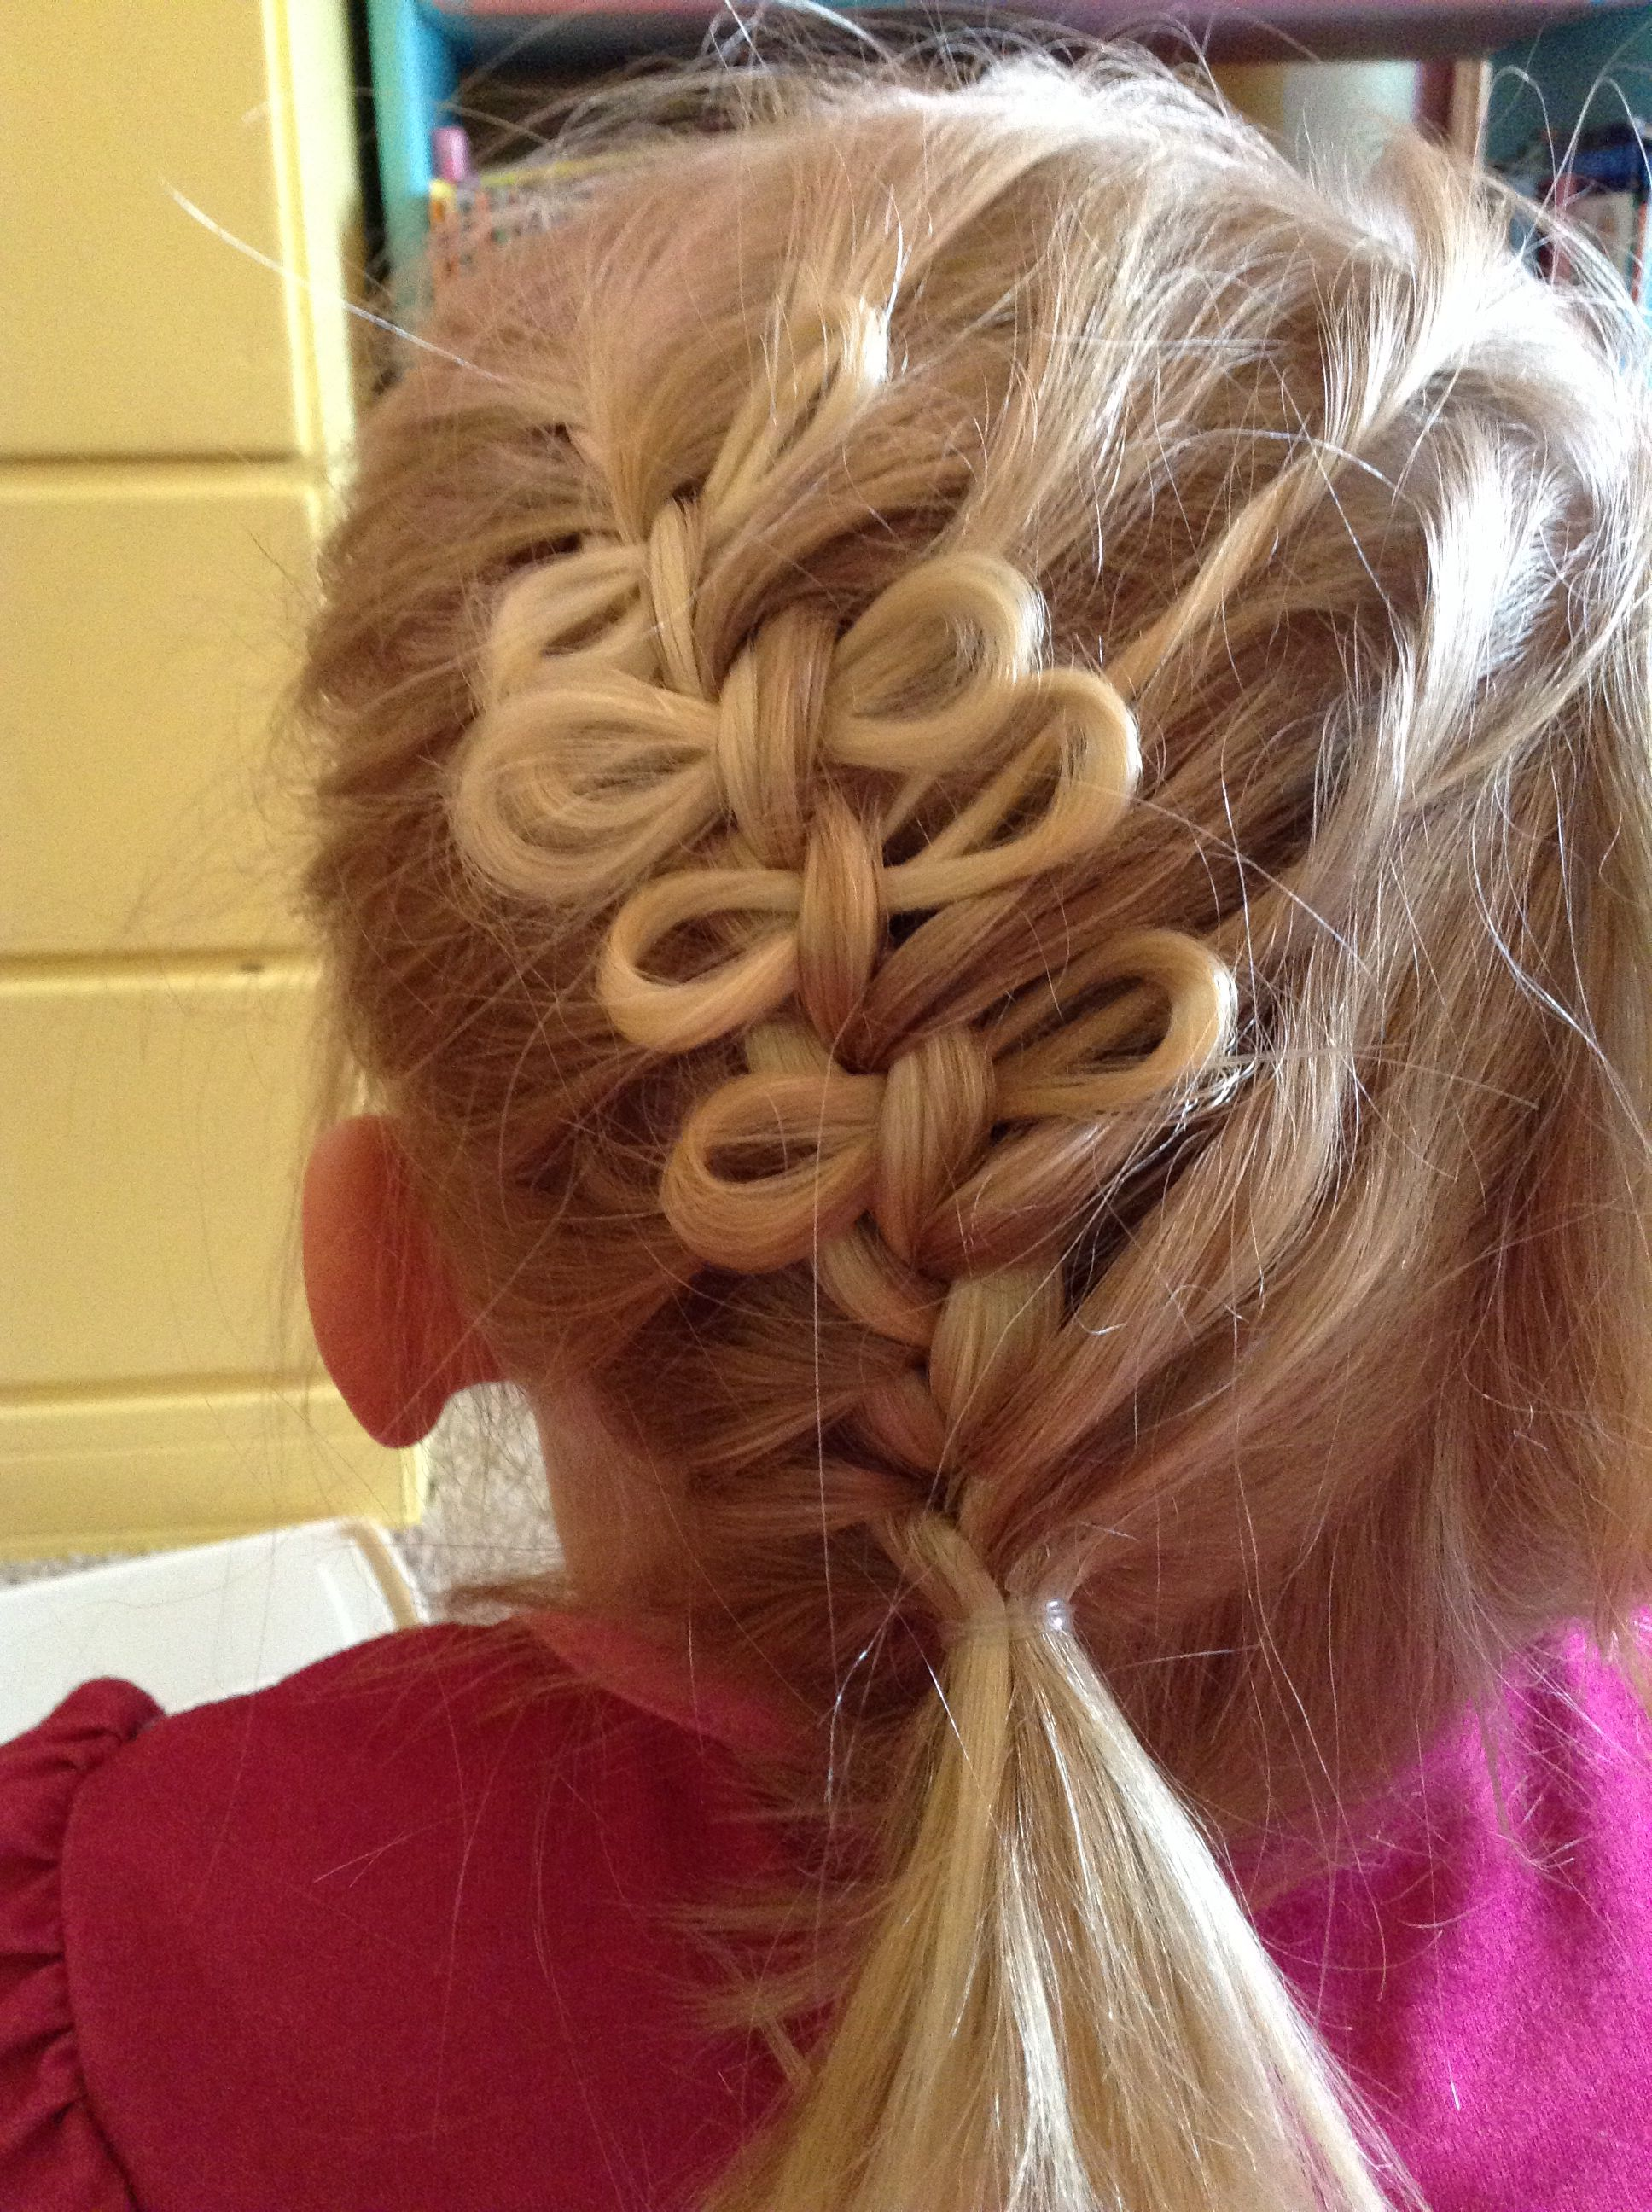 Diy bow braid from cute girls hairstyles works on all hair types